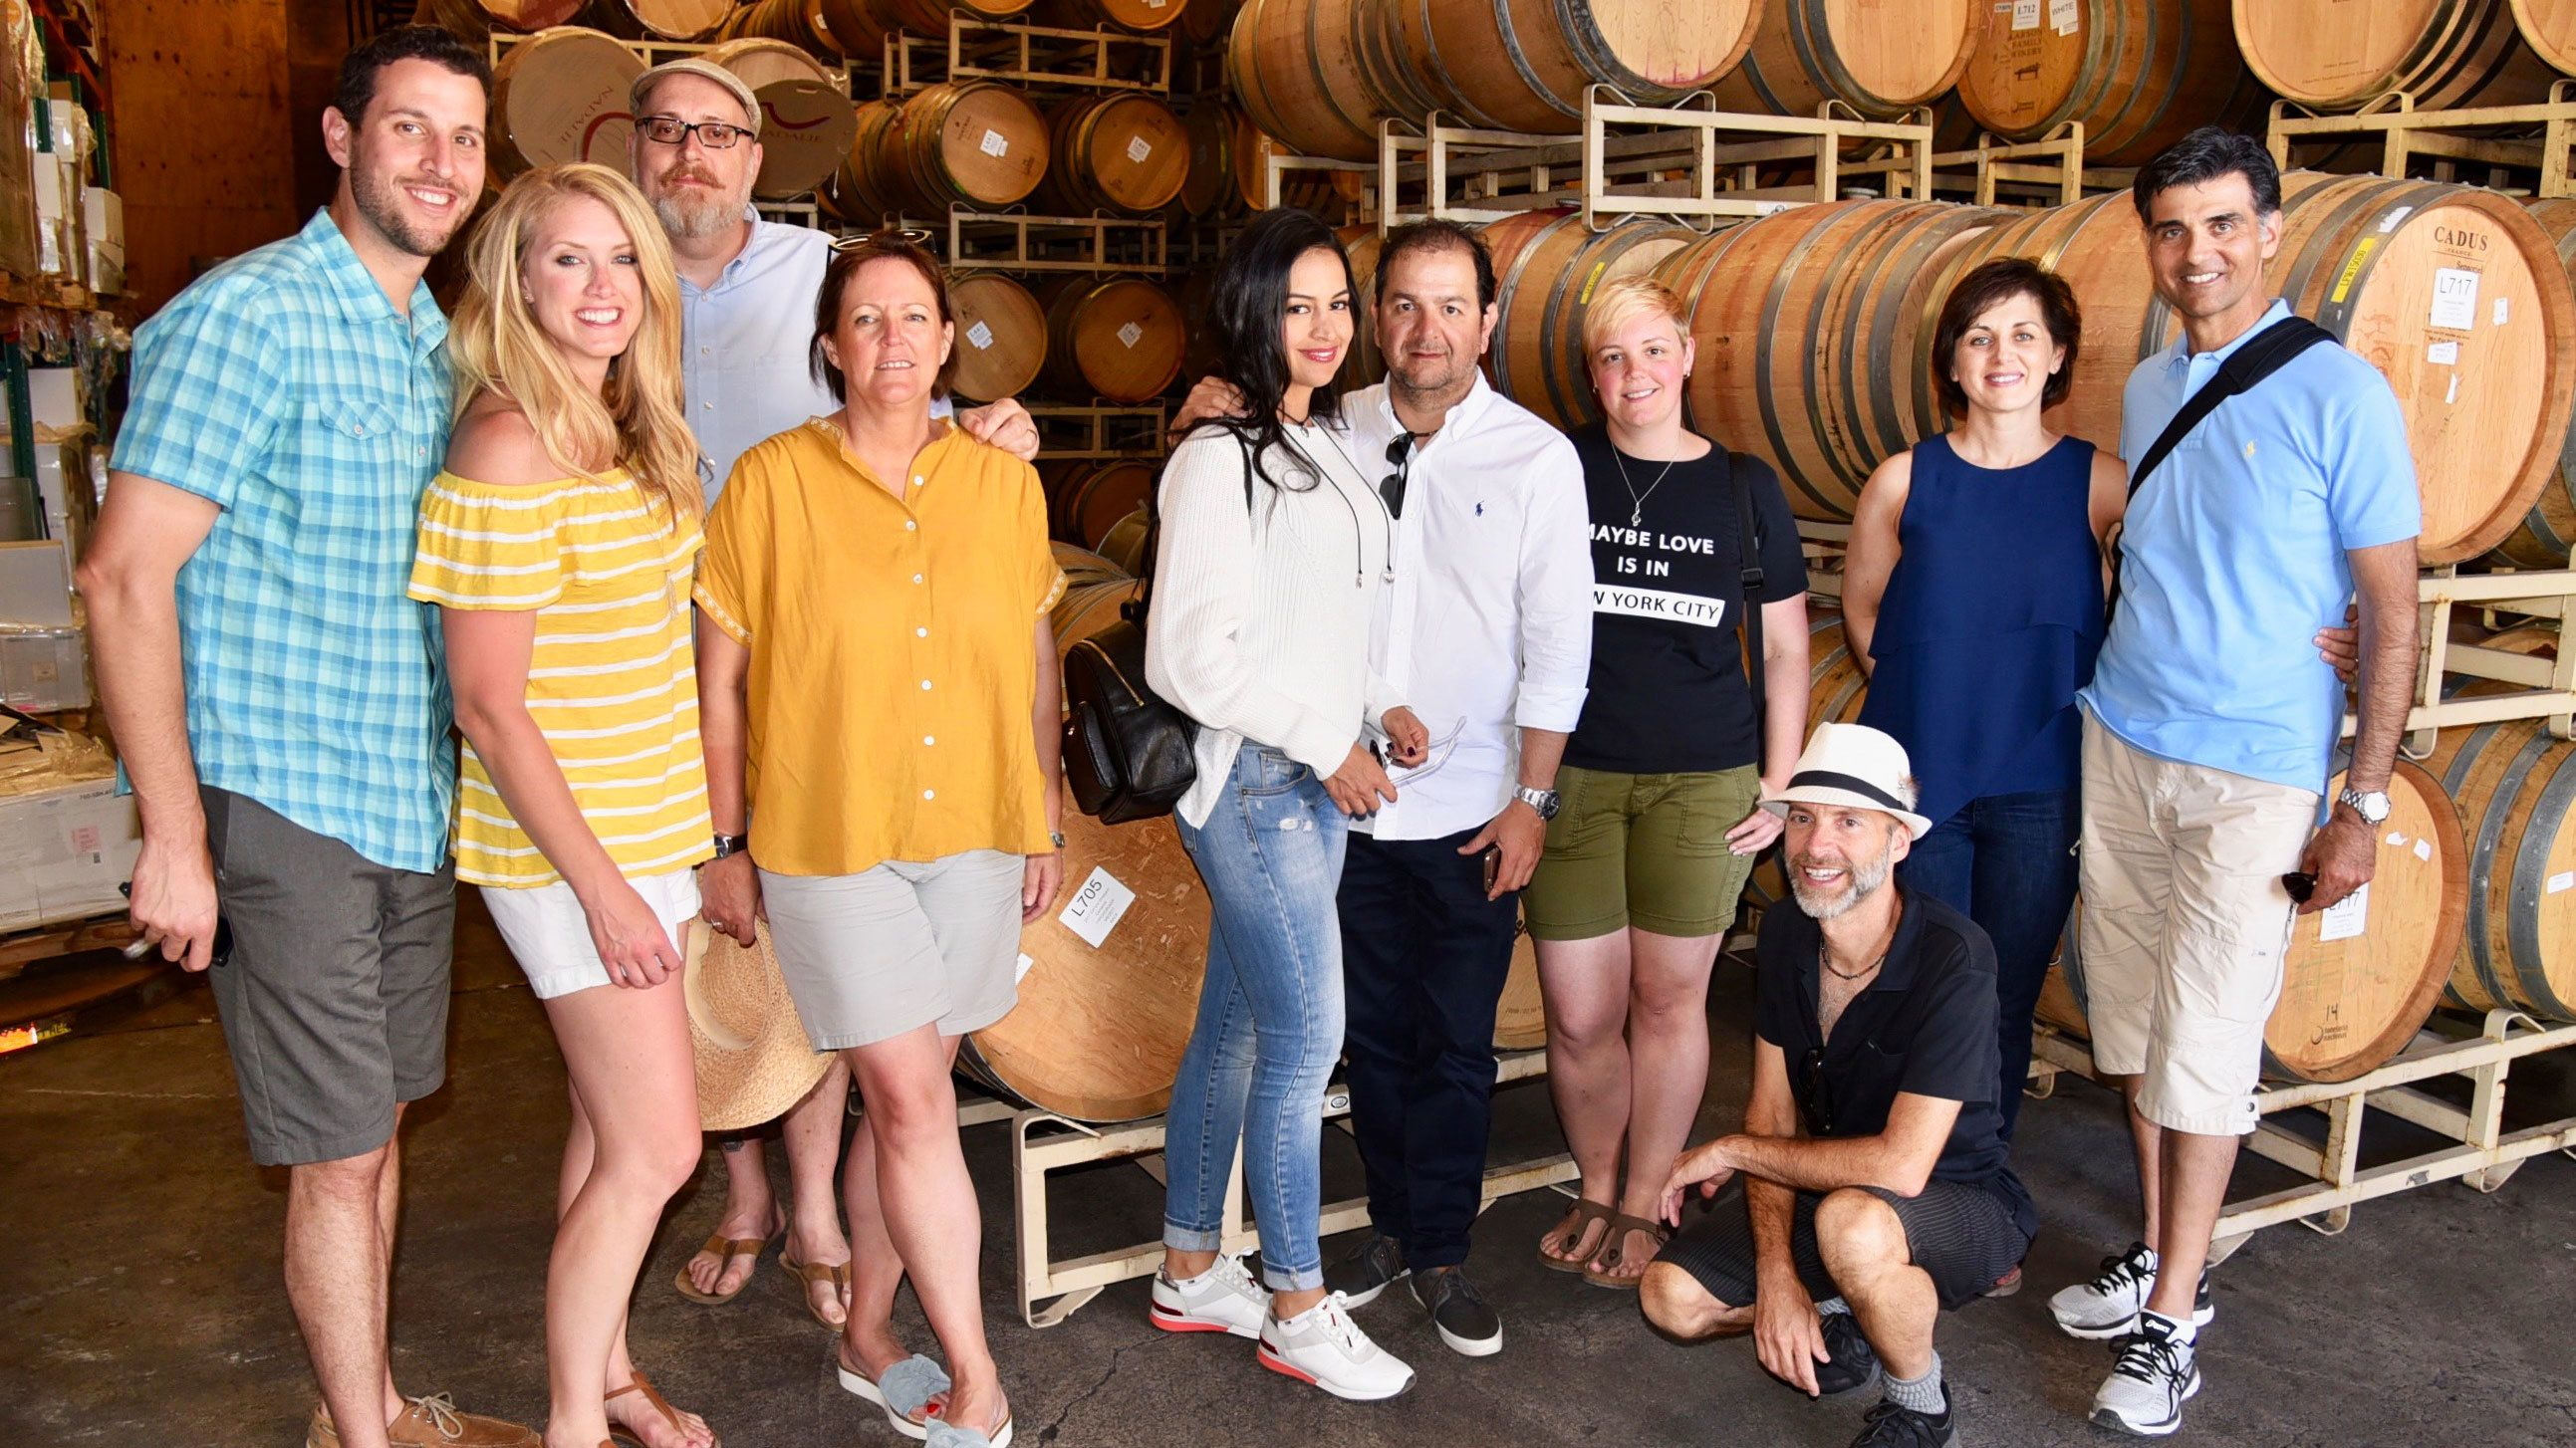 Tour group in winery in Napa Valley